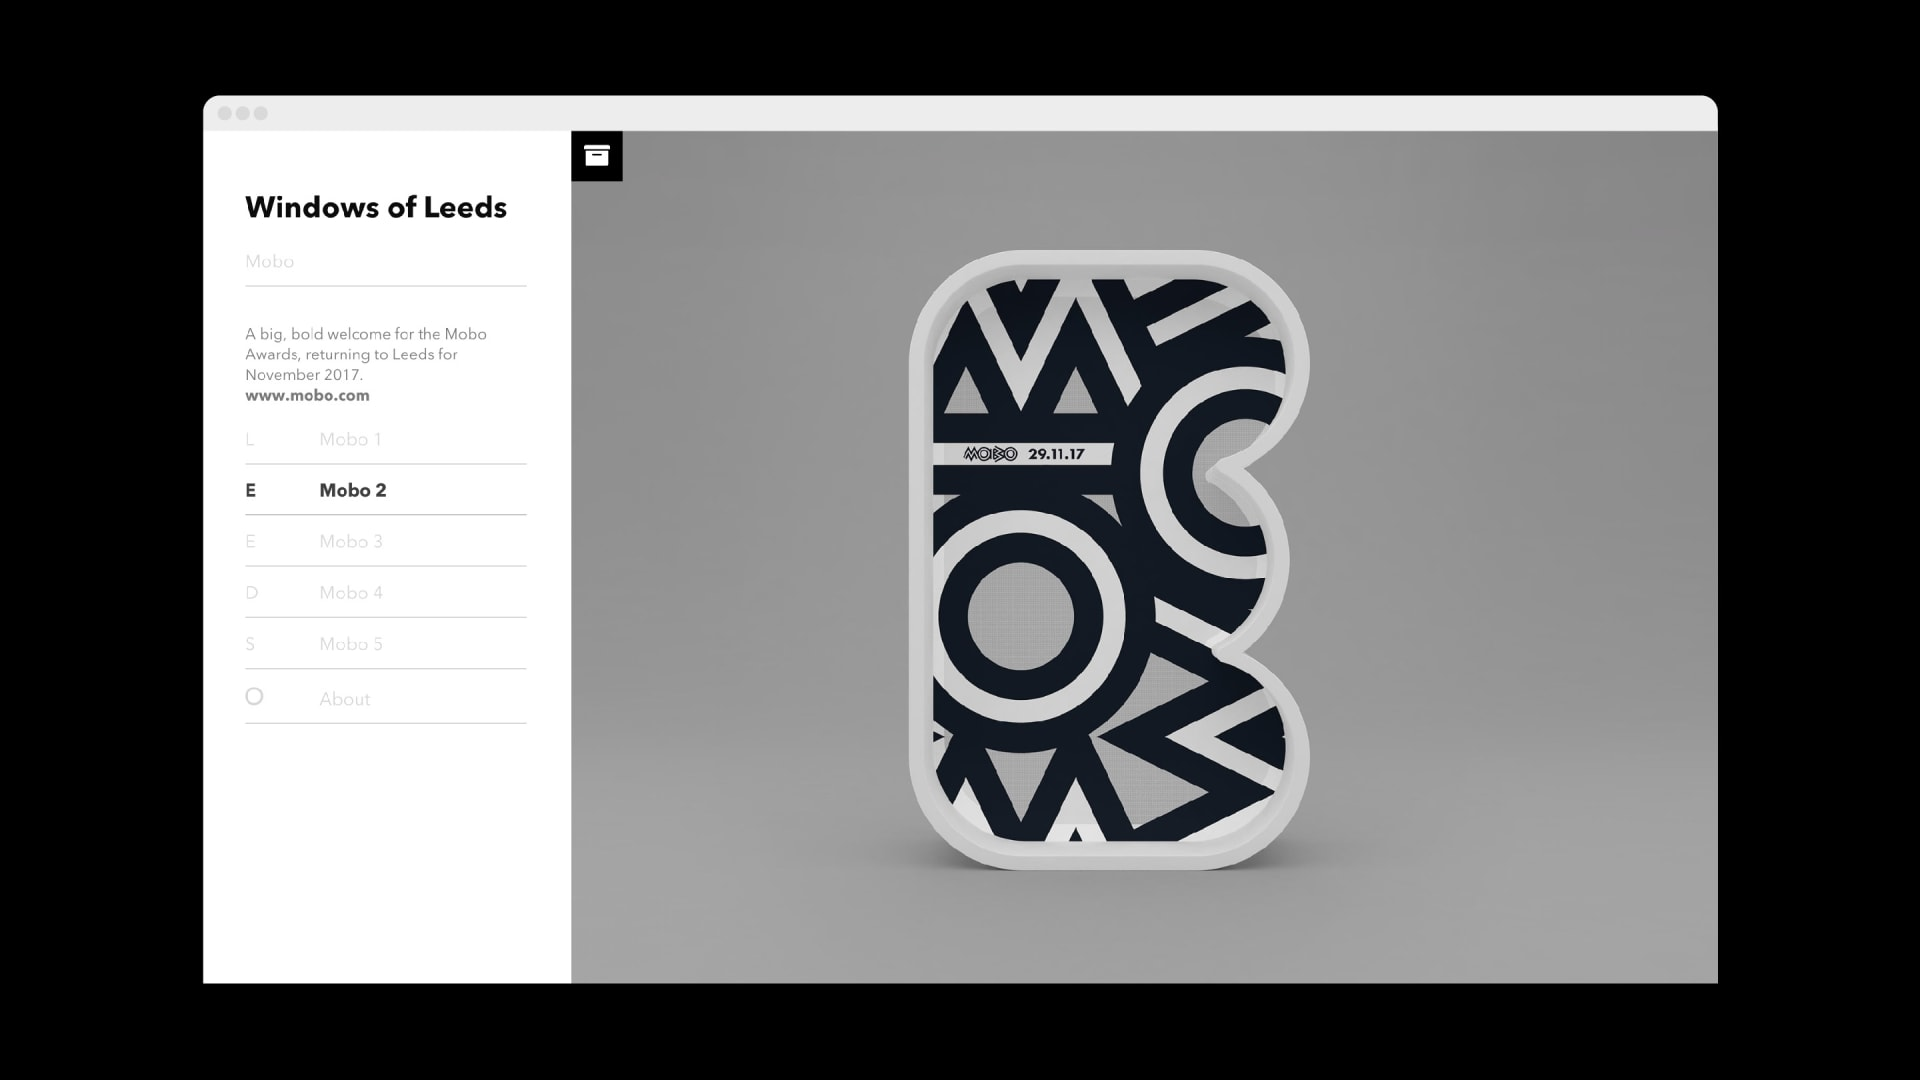 Windows of Leeds website archive: Mobo comission